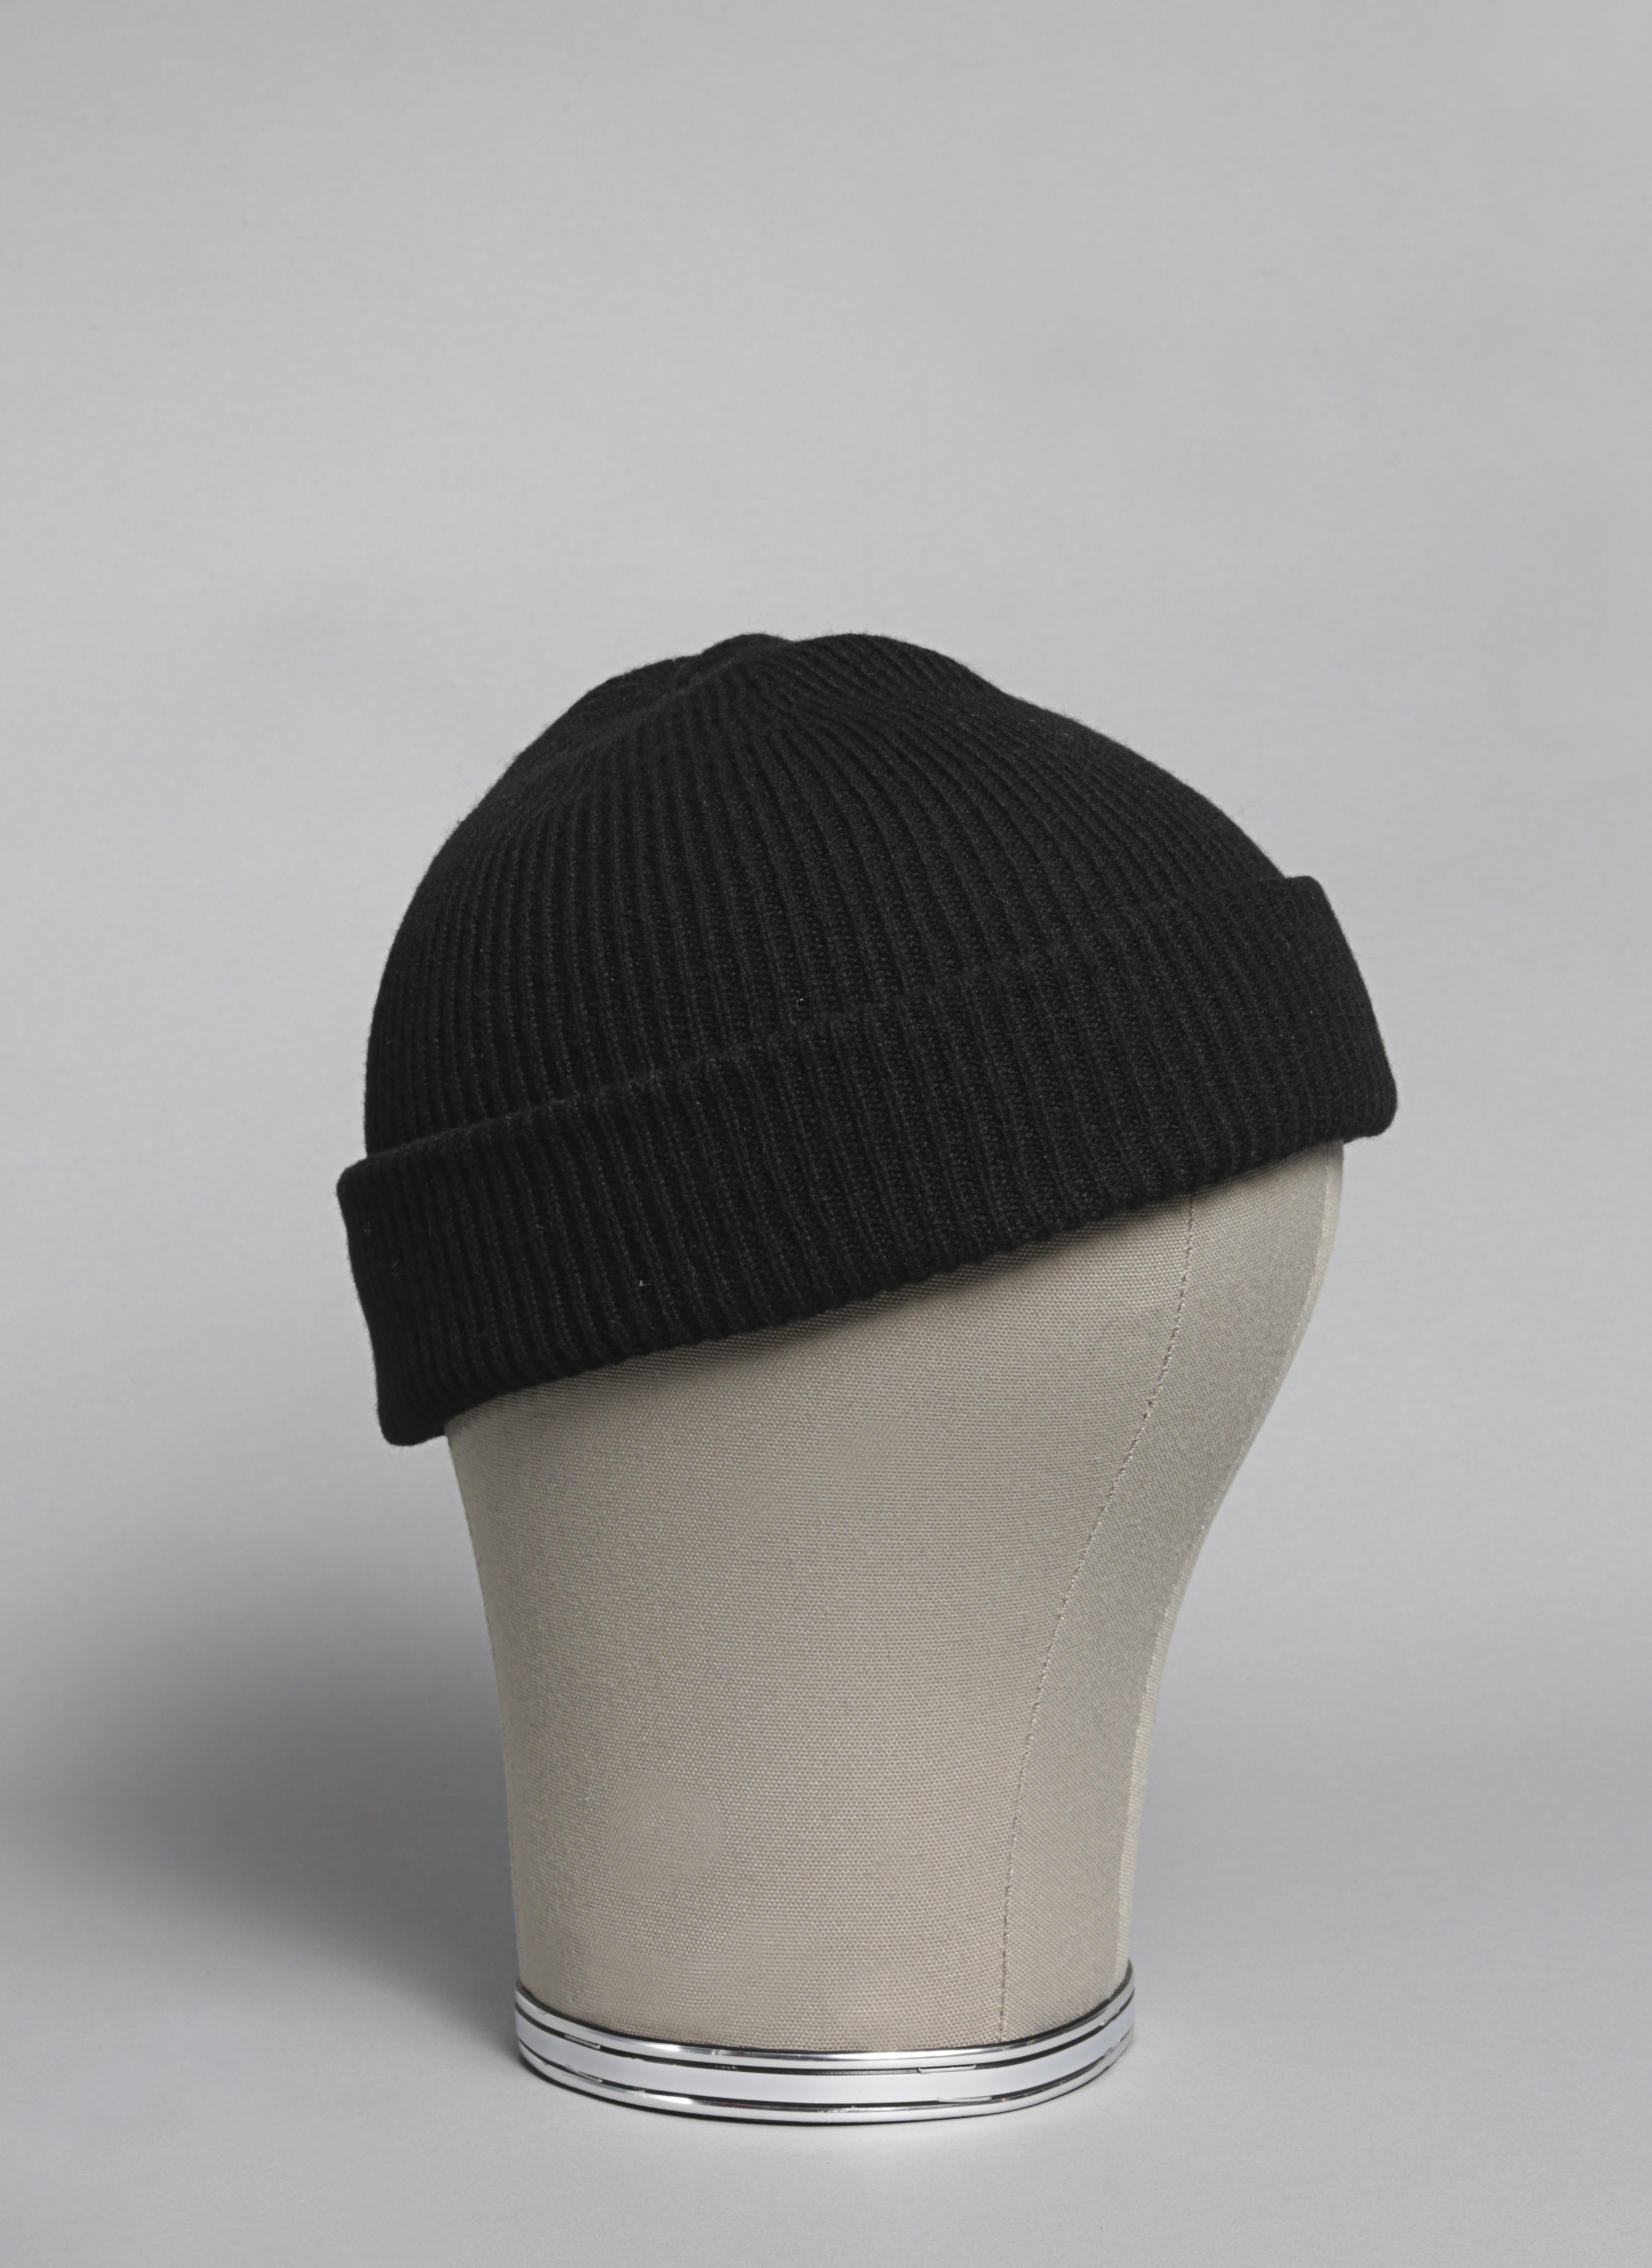 Double Sided Giant Magnetic Human Body Set: Cashmere Double-Sided Beanie In Black